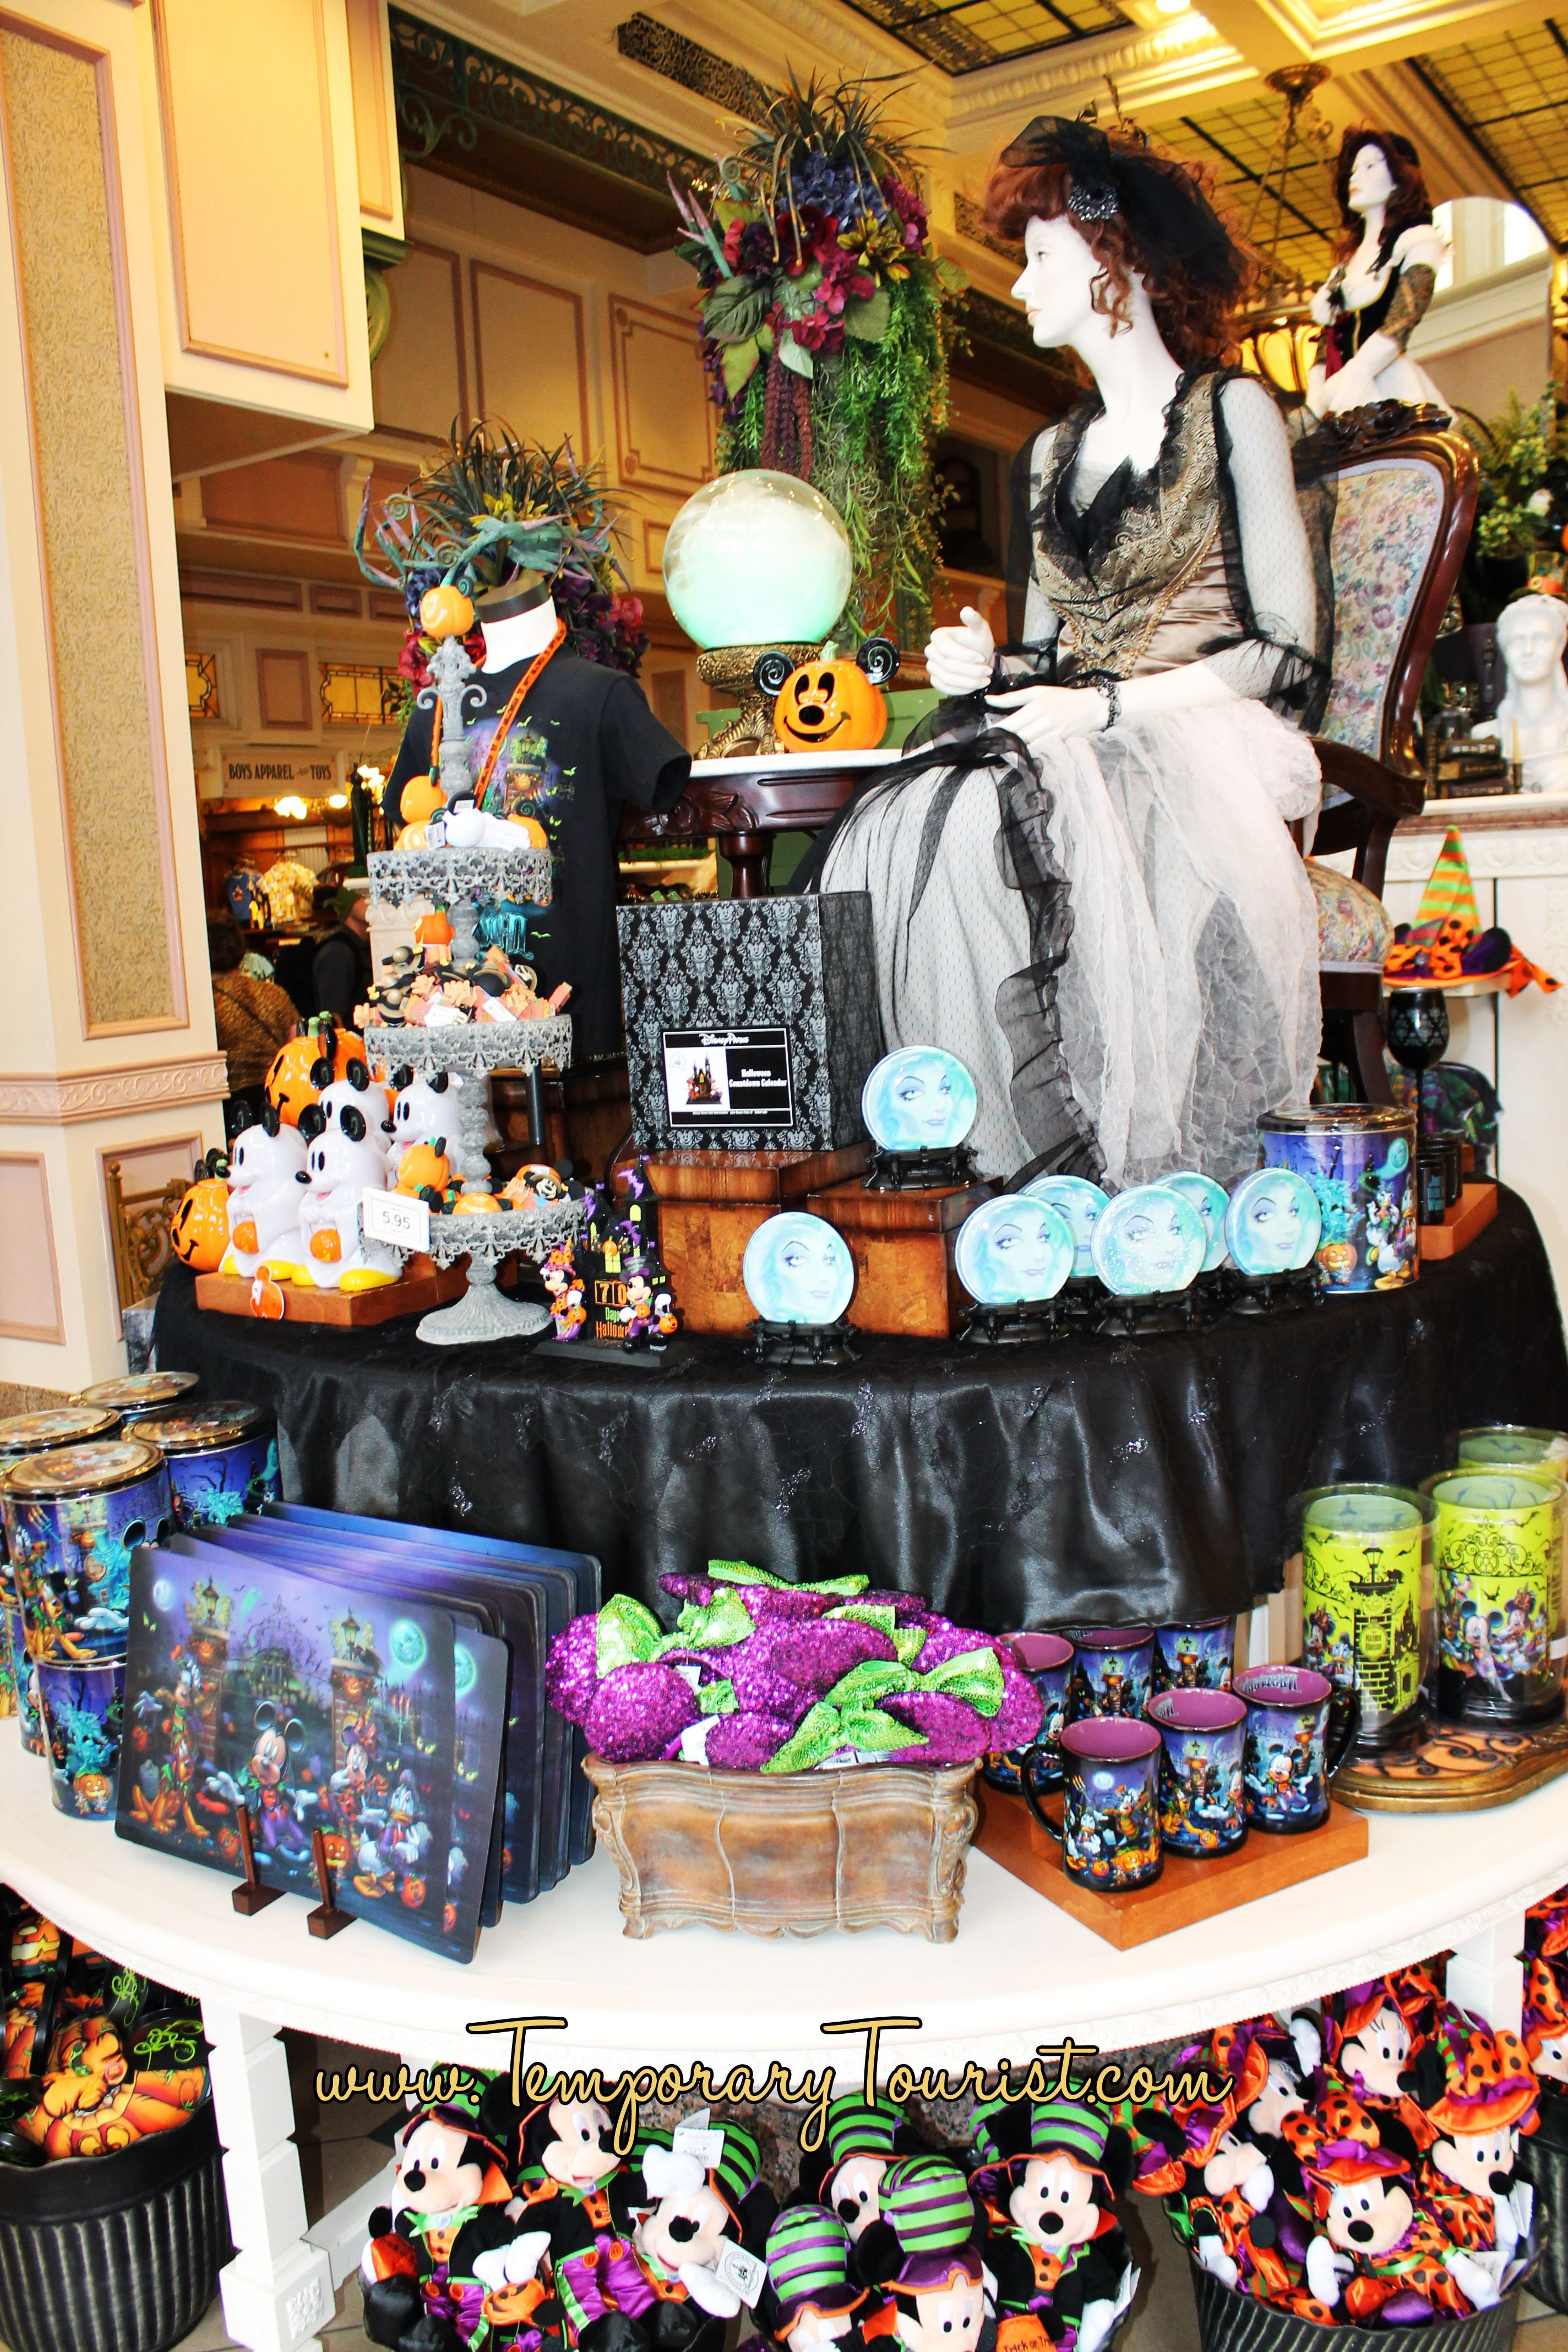 Disney Cruise Line Halloween Merchandise.Halloween Merchandise In Walt Disney World 2013 Halloween